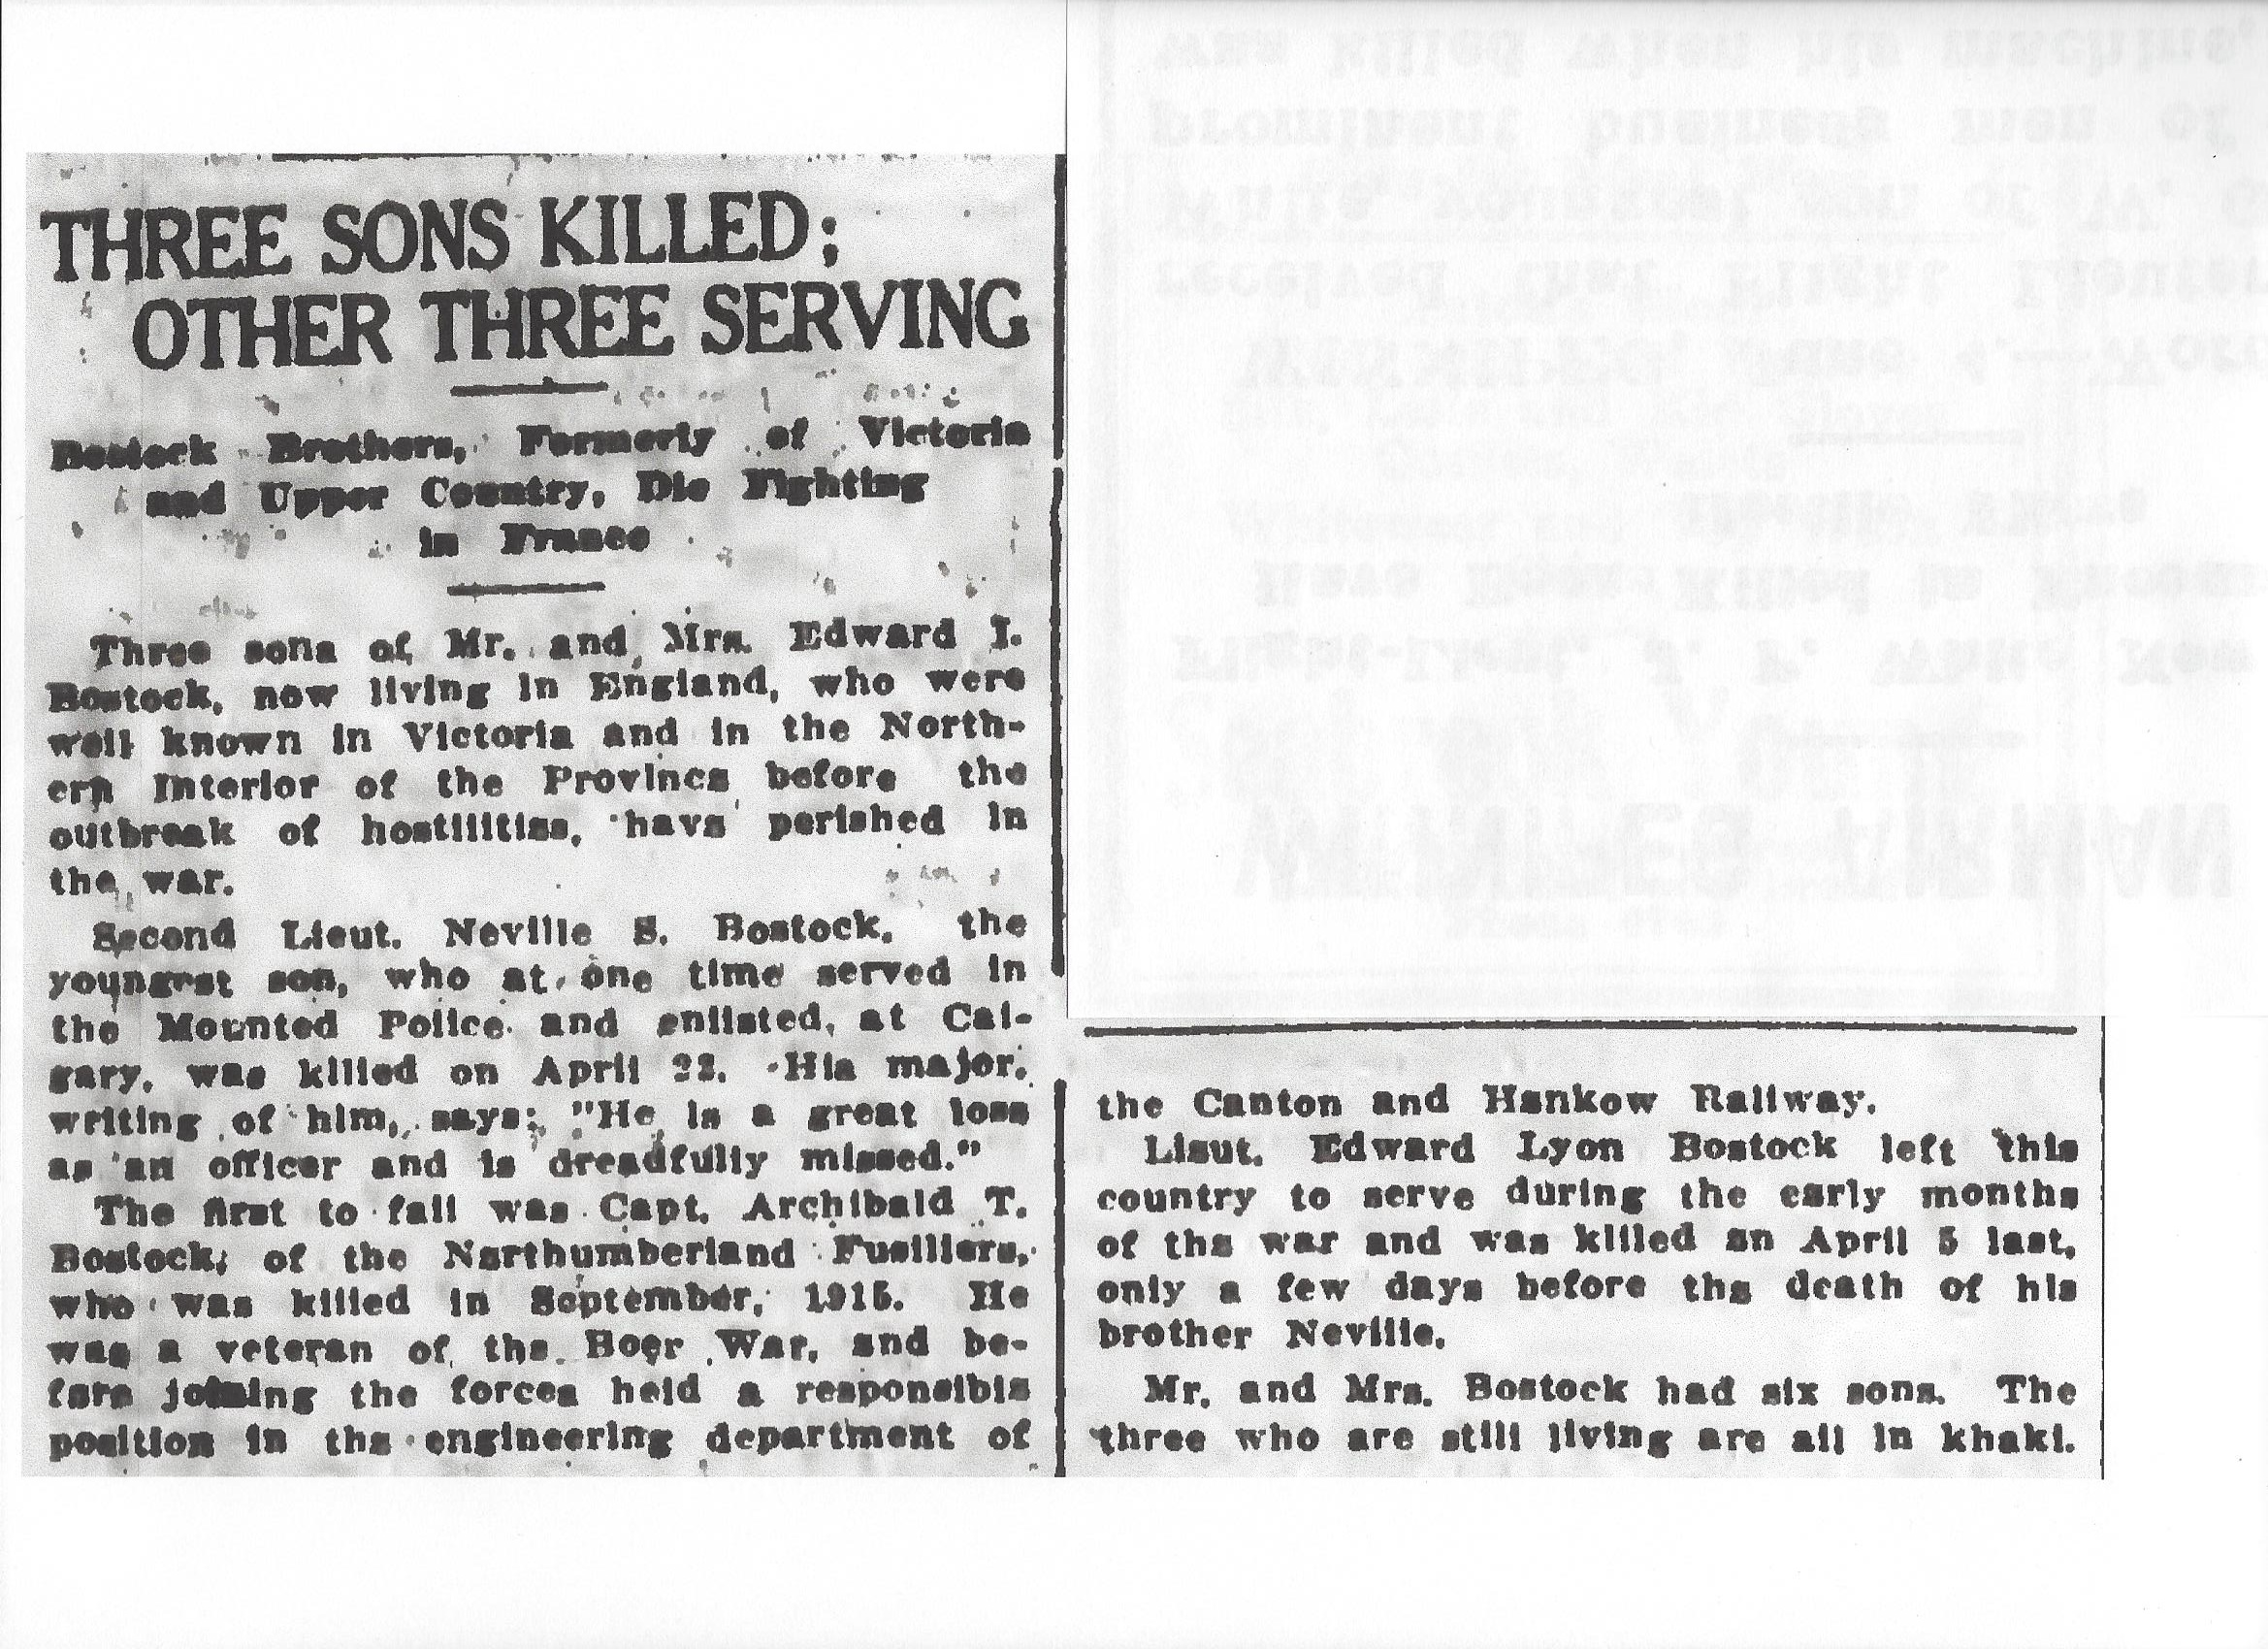 Newspaper clipping – From the Daily Colonist of June 5, 1917. Nevill's brother Archibald Bostock died on September 30, 1915 and is buried at the Etaples Military Cemetery, and his brother Edward died on April 5, 1917 and is buried at the Bray Military Cemetery, Image taken from web address of http://archive.org/stream/dailycolonist59y152uvic#page/n0/mode/1up